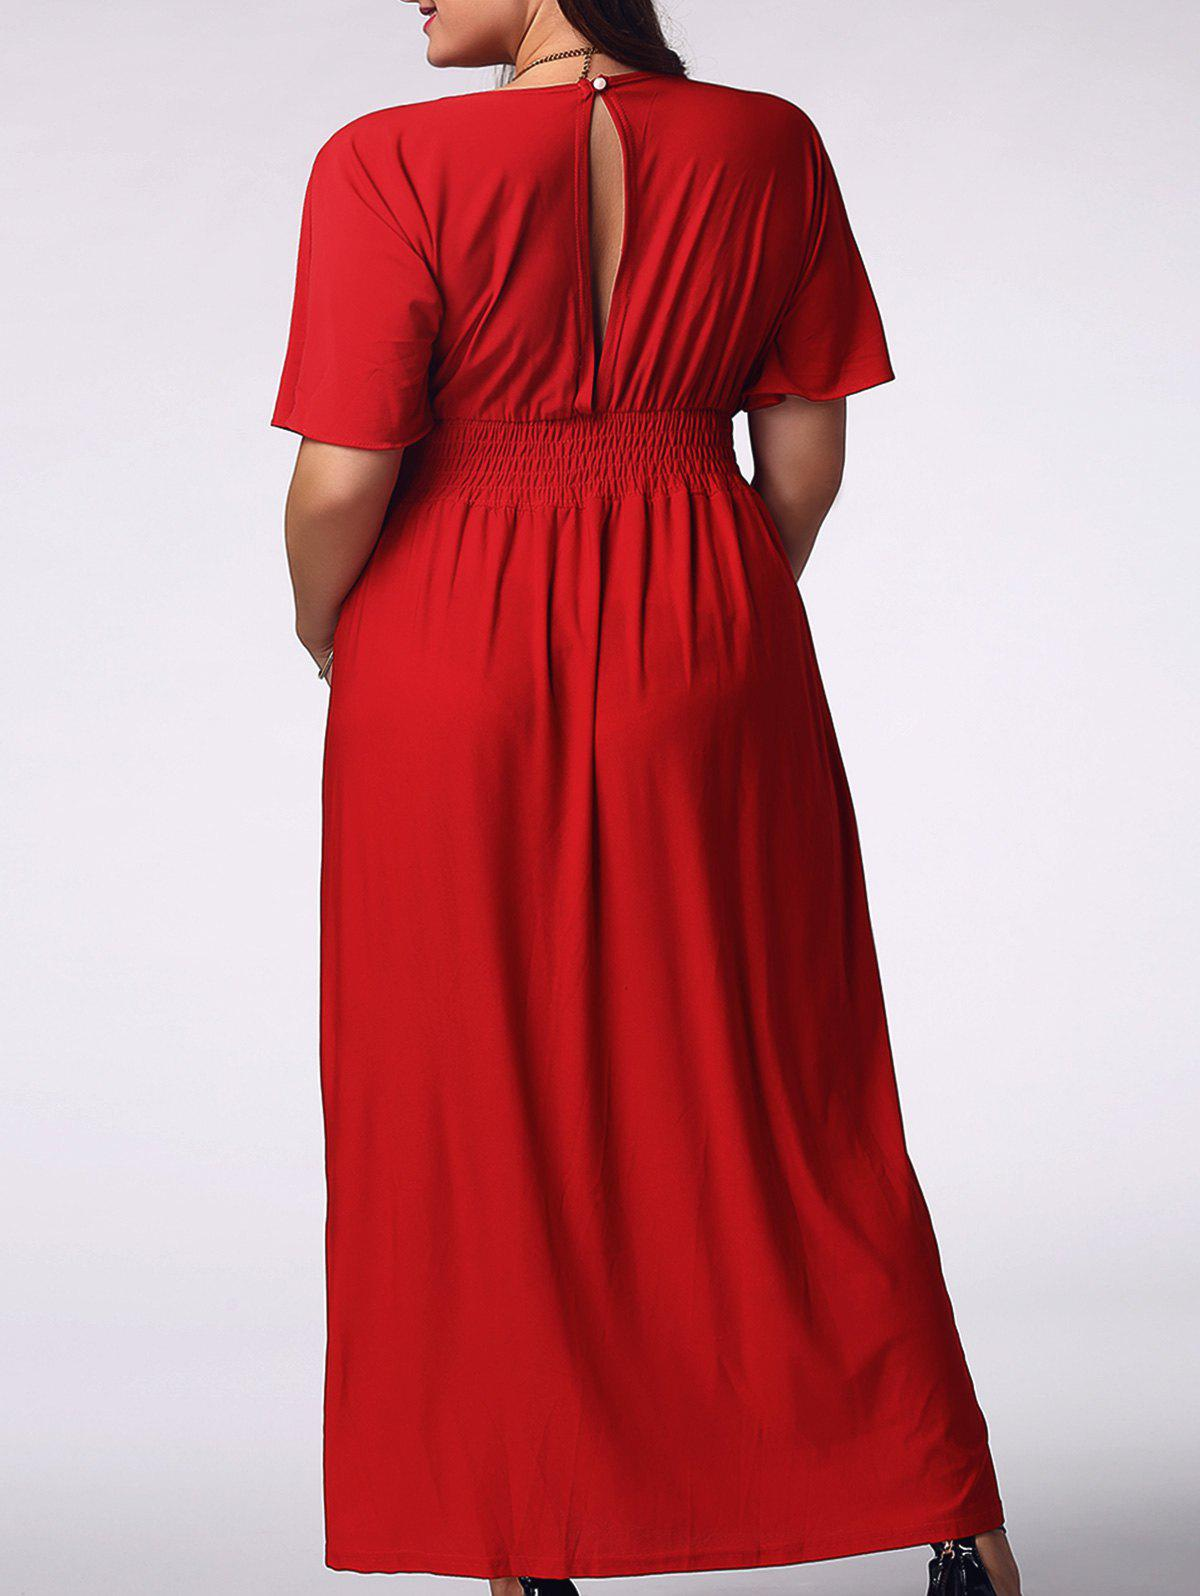 Elegant Plus Size Short Sleeve Plunging Neck Solid Color Women's Prom Dress - RED 3XL